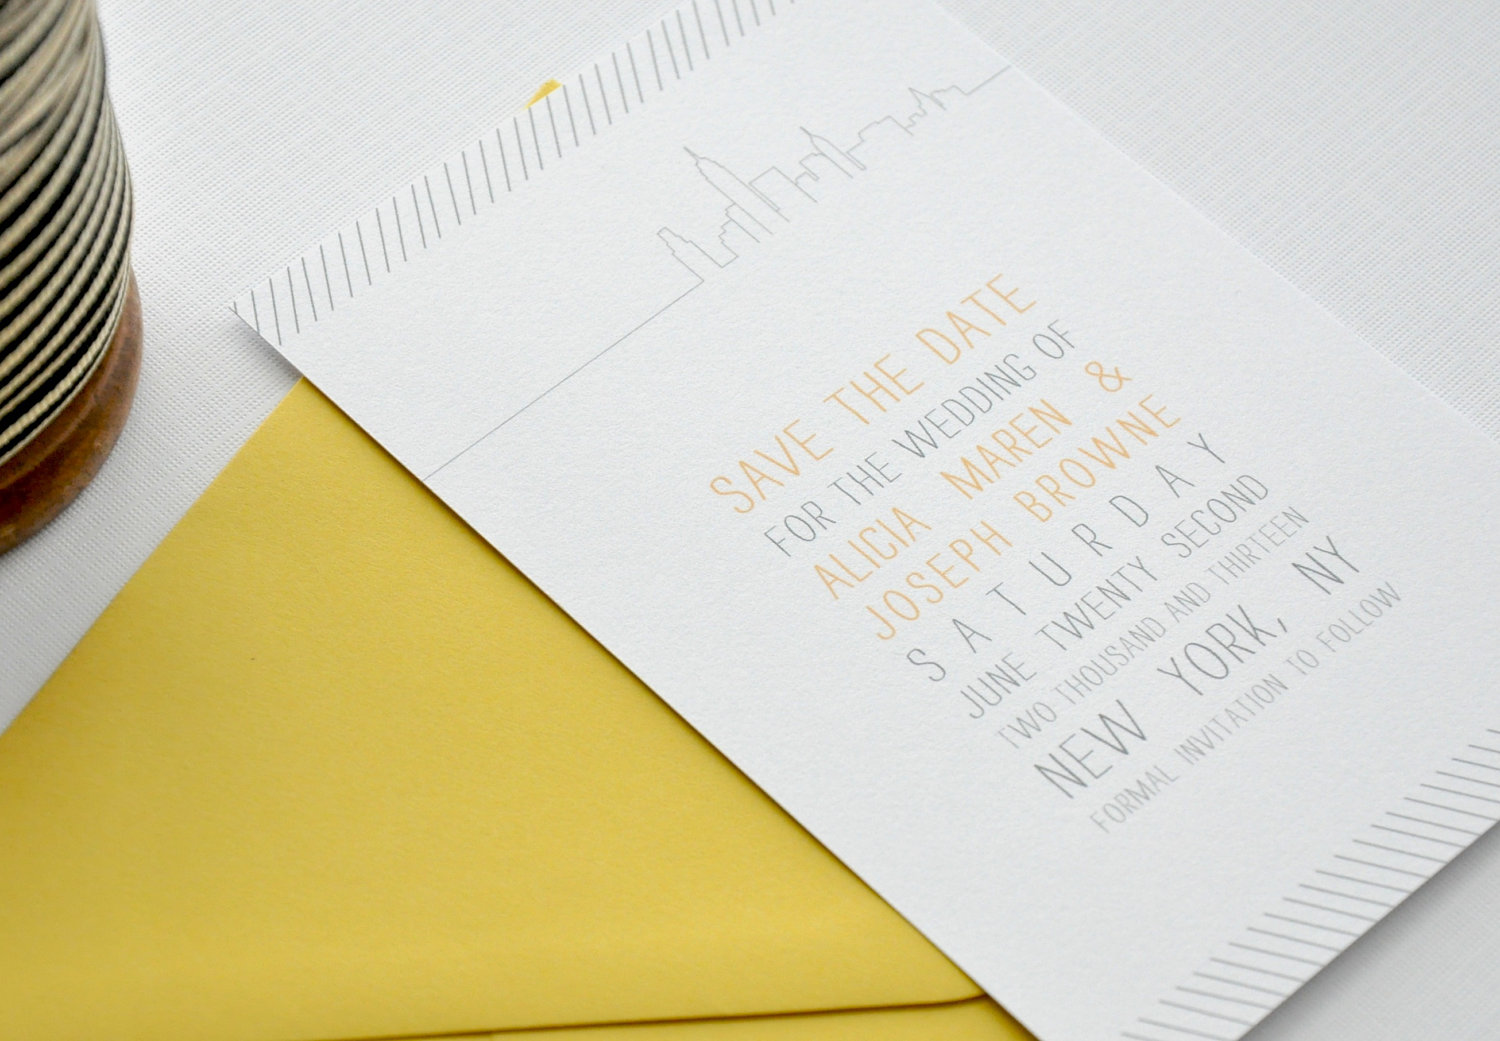 New-york-wedding-inspiration-handmade-etsy-weddings-ecru-gray-yellow-invitations.original